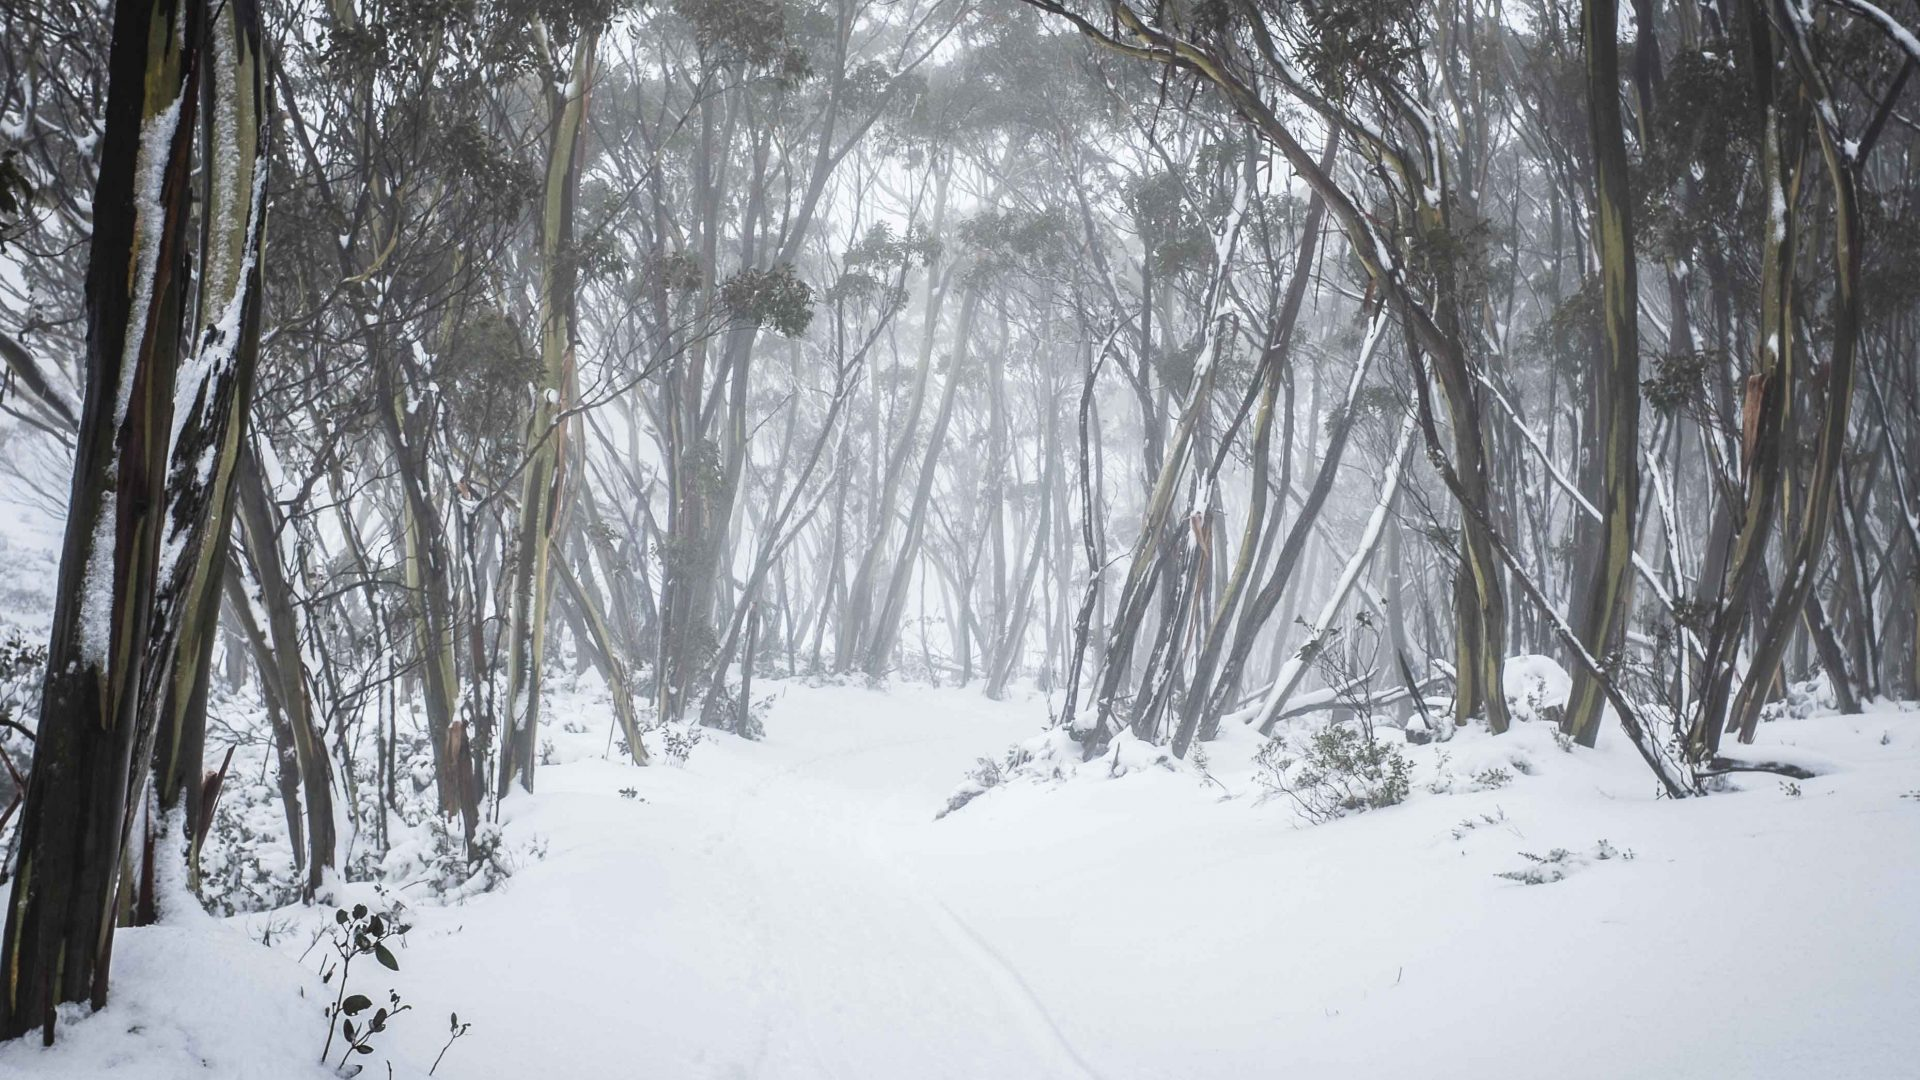 The snow-covered surrounds of Mount Baw Baw, Victoria, Australia.